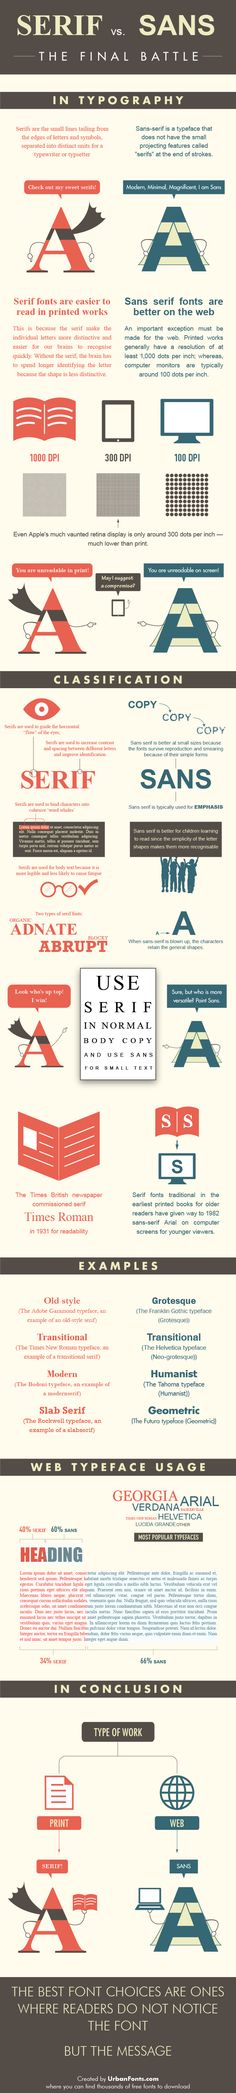 Here's a neat infographic that explains the differences between serif and sans serif fonts. You'll learn when to use one over the other as well as